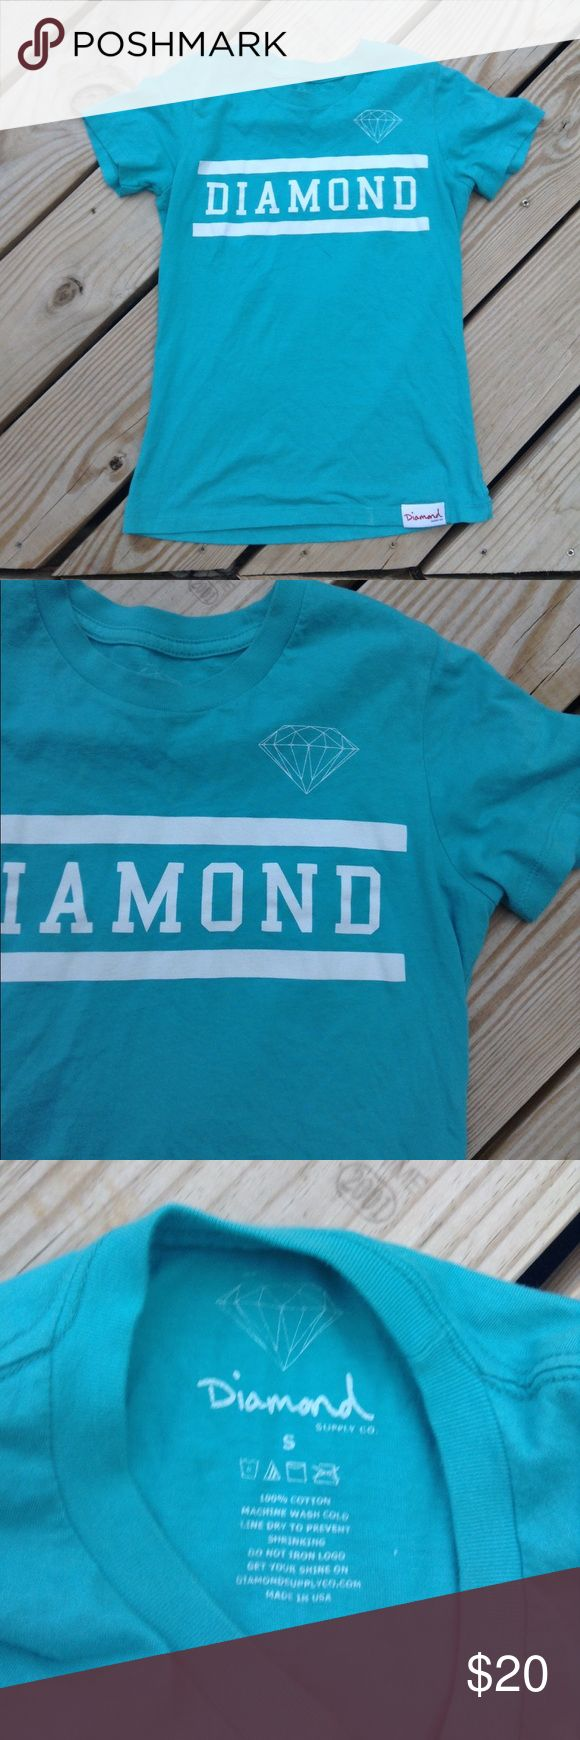 DIAMOND SUPPLY COMPANY BLUE AND WHITE T SHIRT SZ S Cool Diamond Supply Company t shirt. Small grey stain near collar and white mark on bottom. Will probably come out. Size small Diamond Supply Company Tops Tees - Short Sleeve